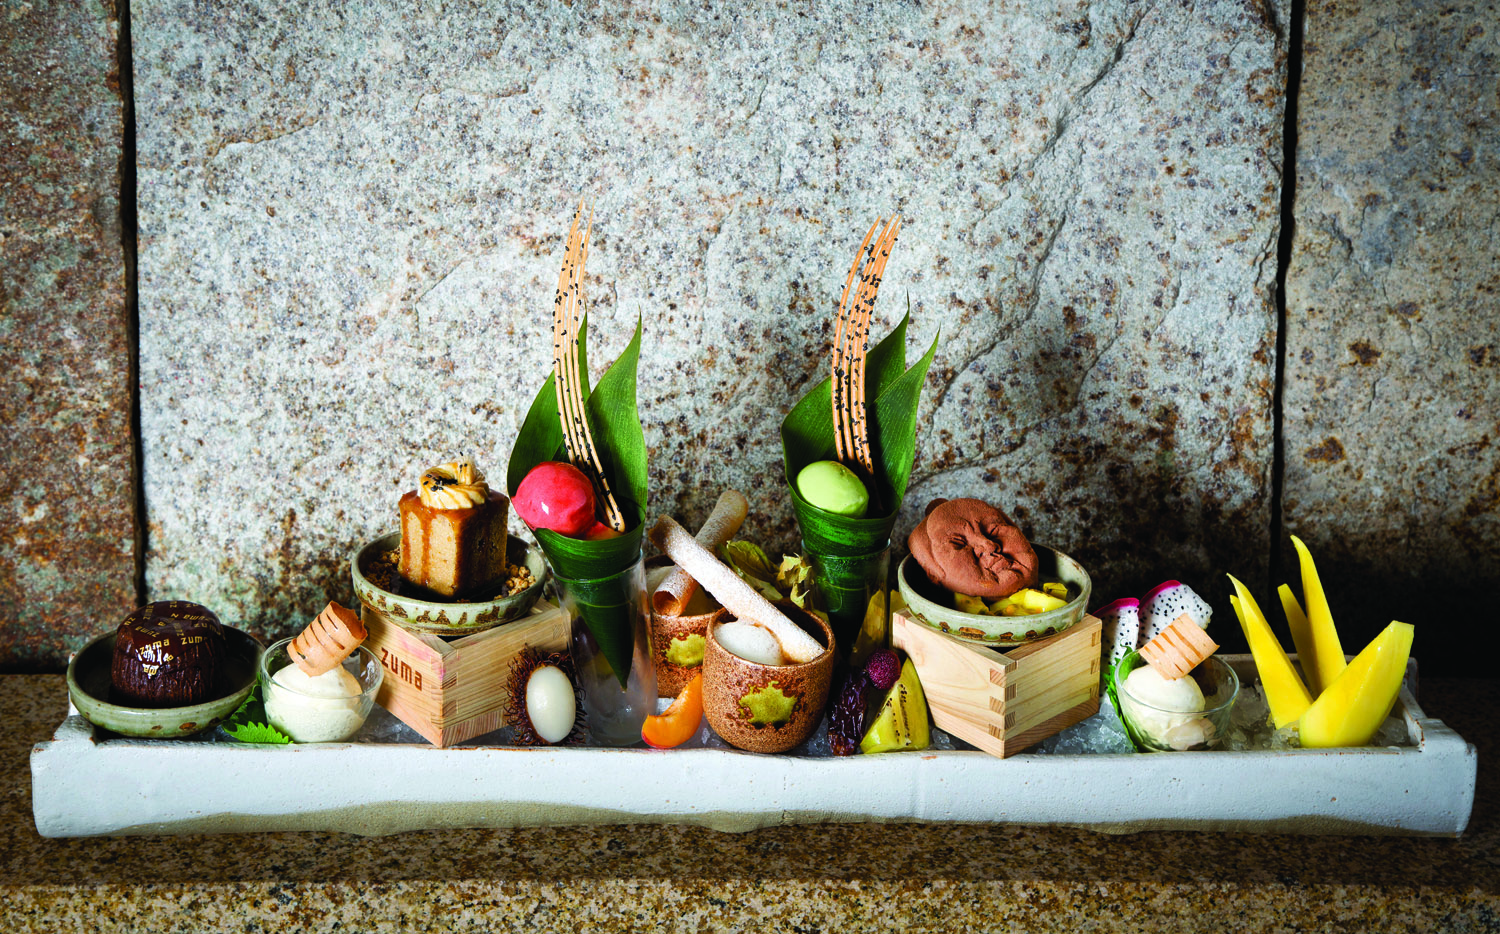 A dessert feast at Zuma, a new eatery at The Cosmopolitan of Las Vegas.